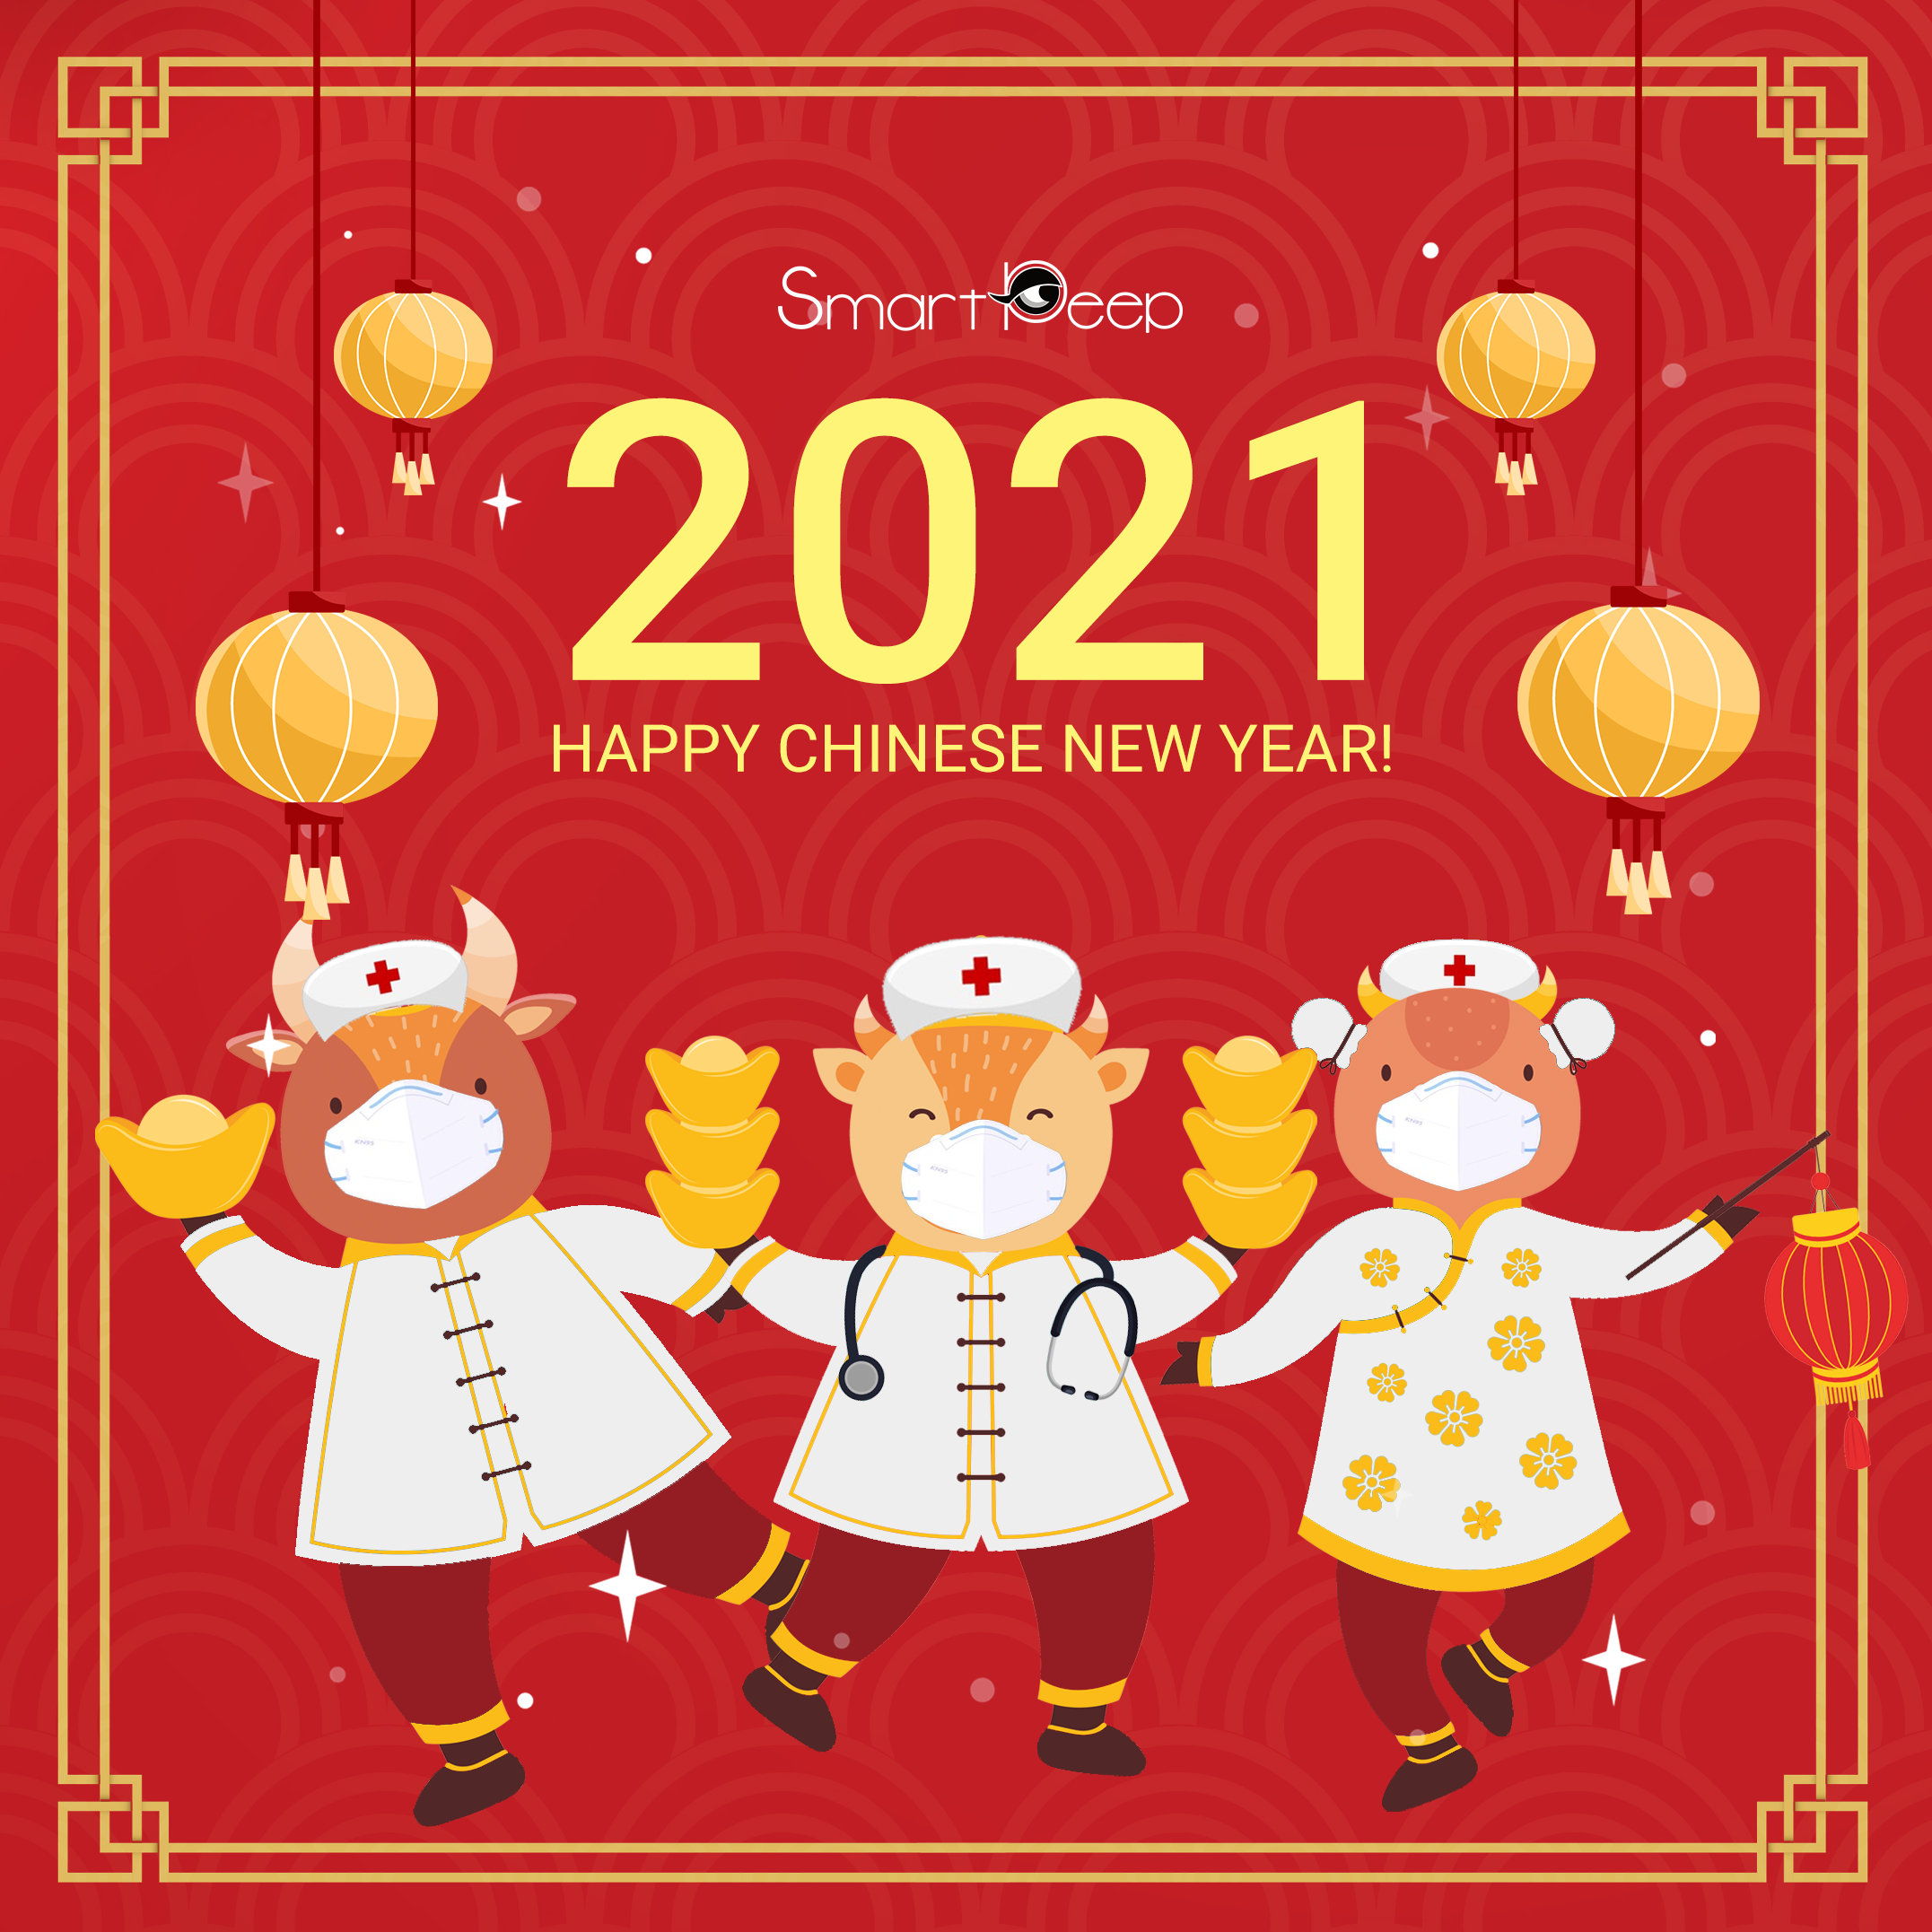 2021 Lunar New Year greetings from SmartPeep Team!